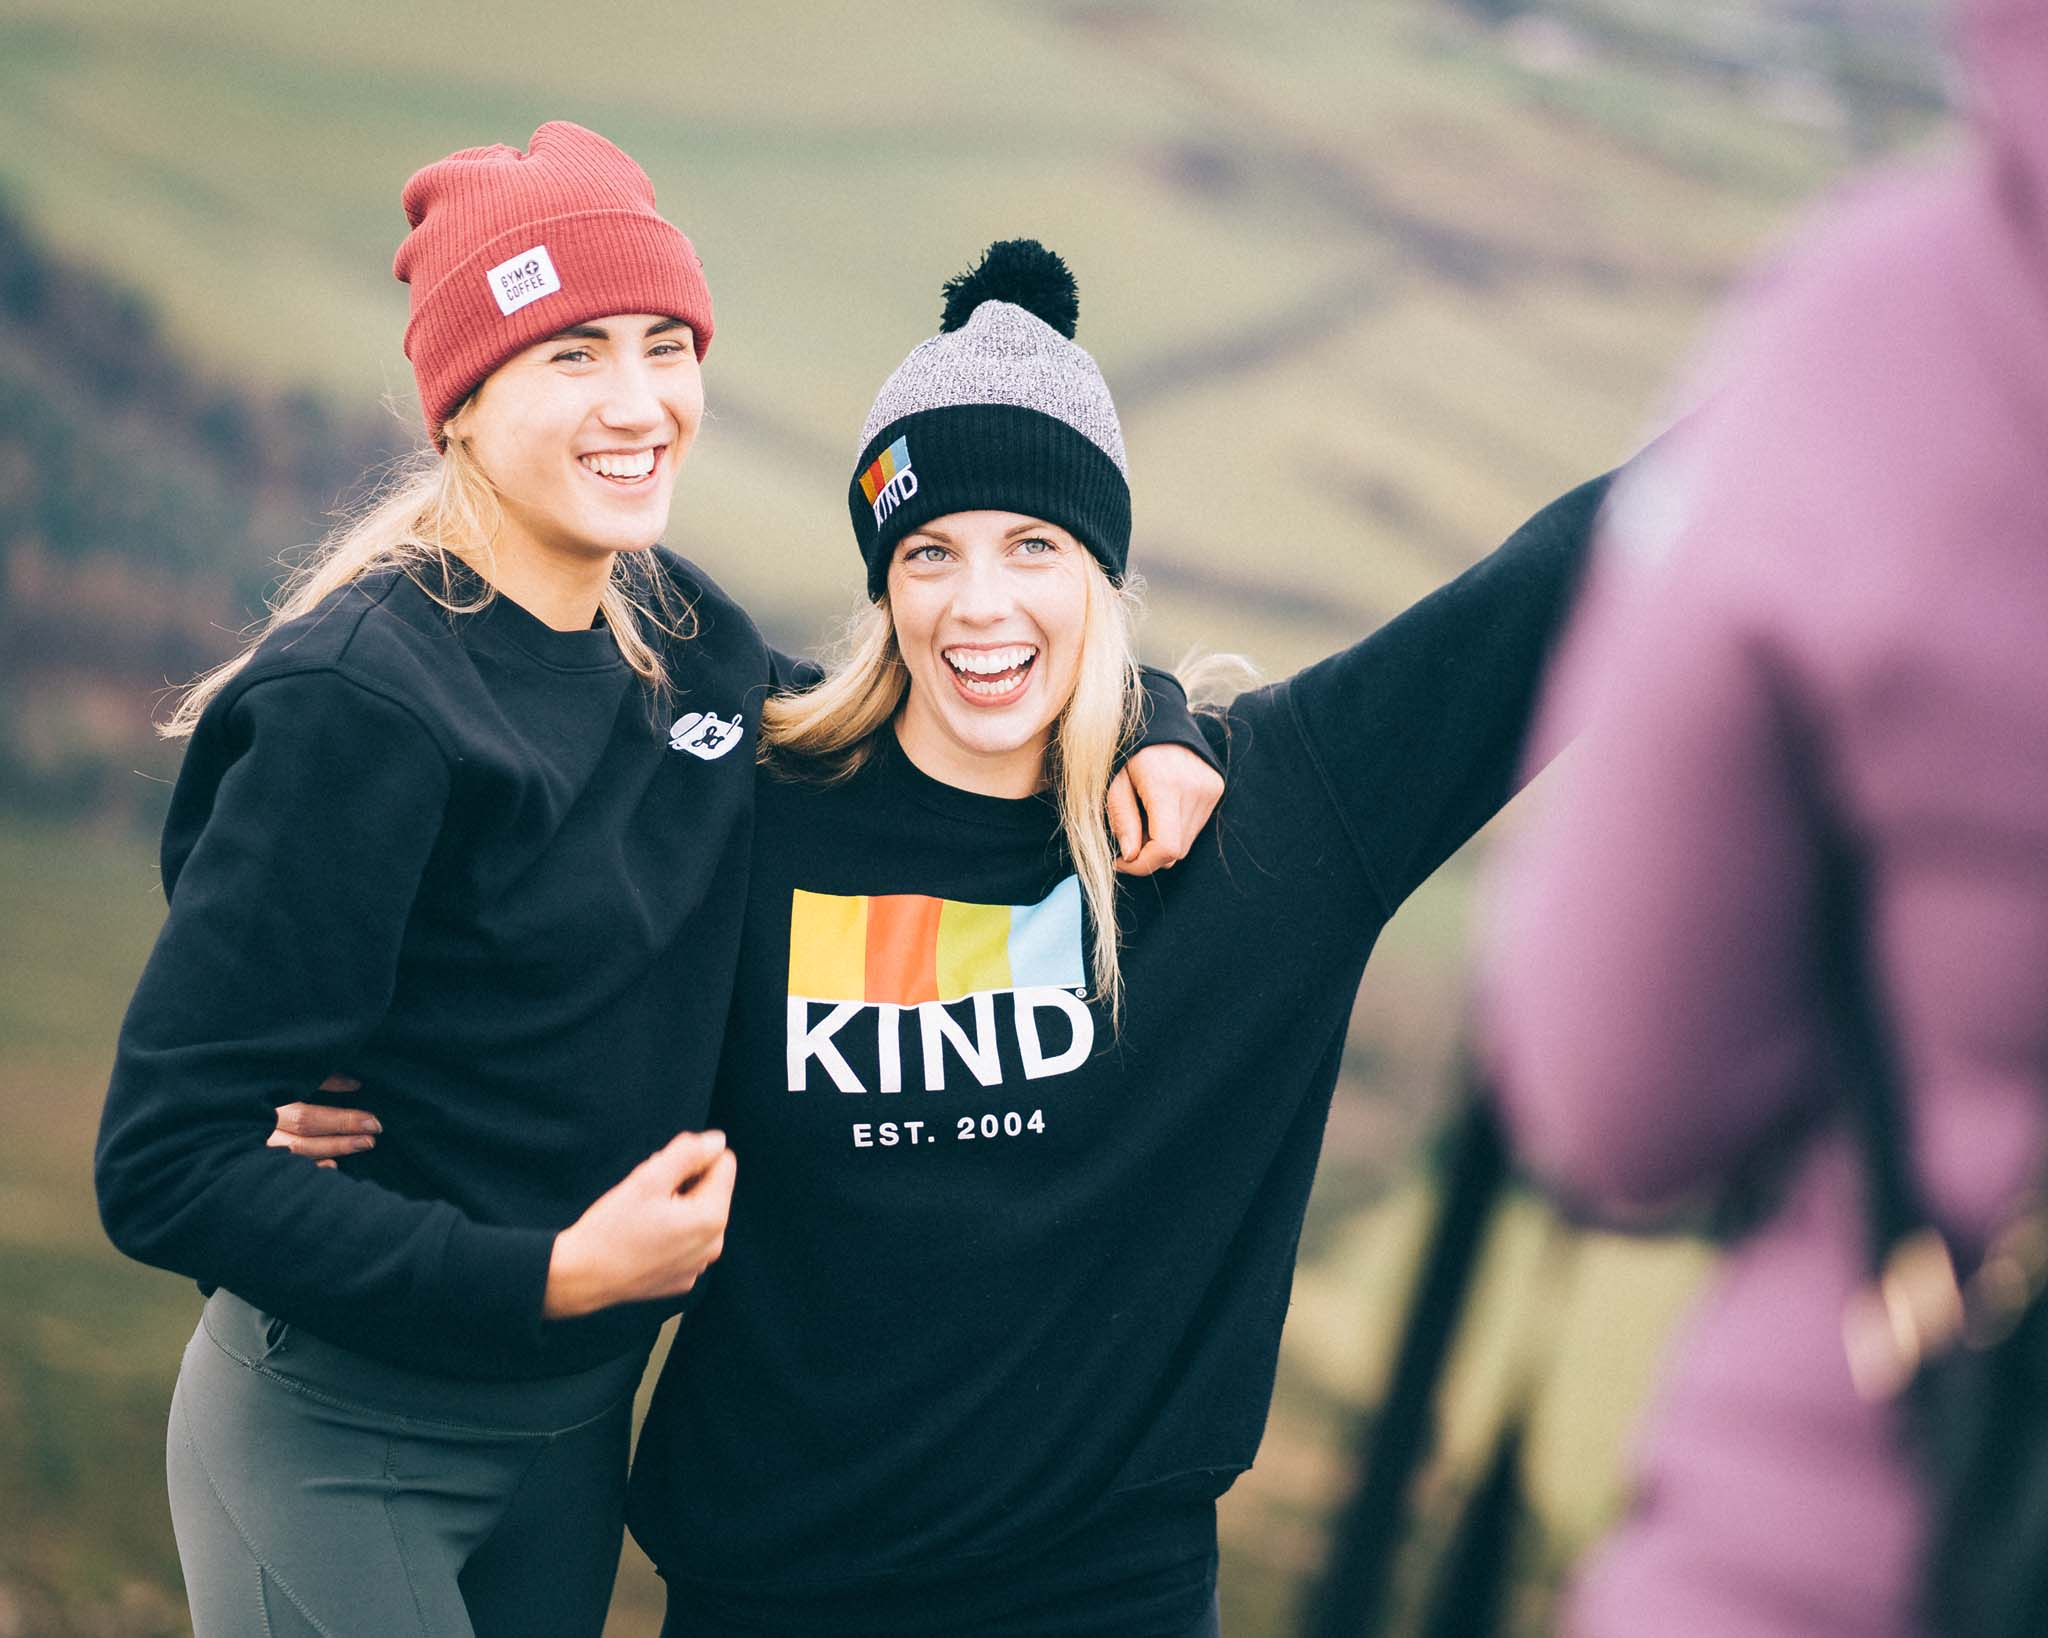 Kind Snacks Ireland Bars and Gym+Coffee Partnerships